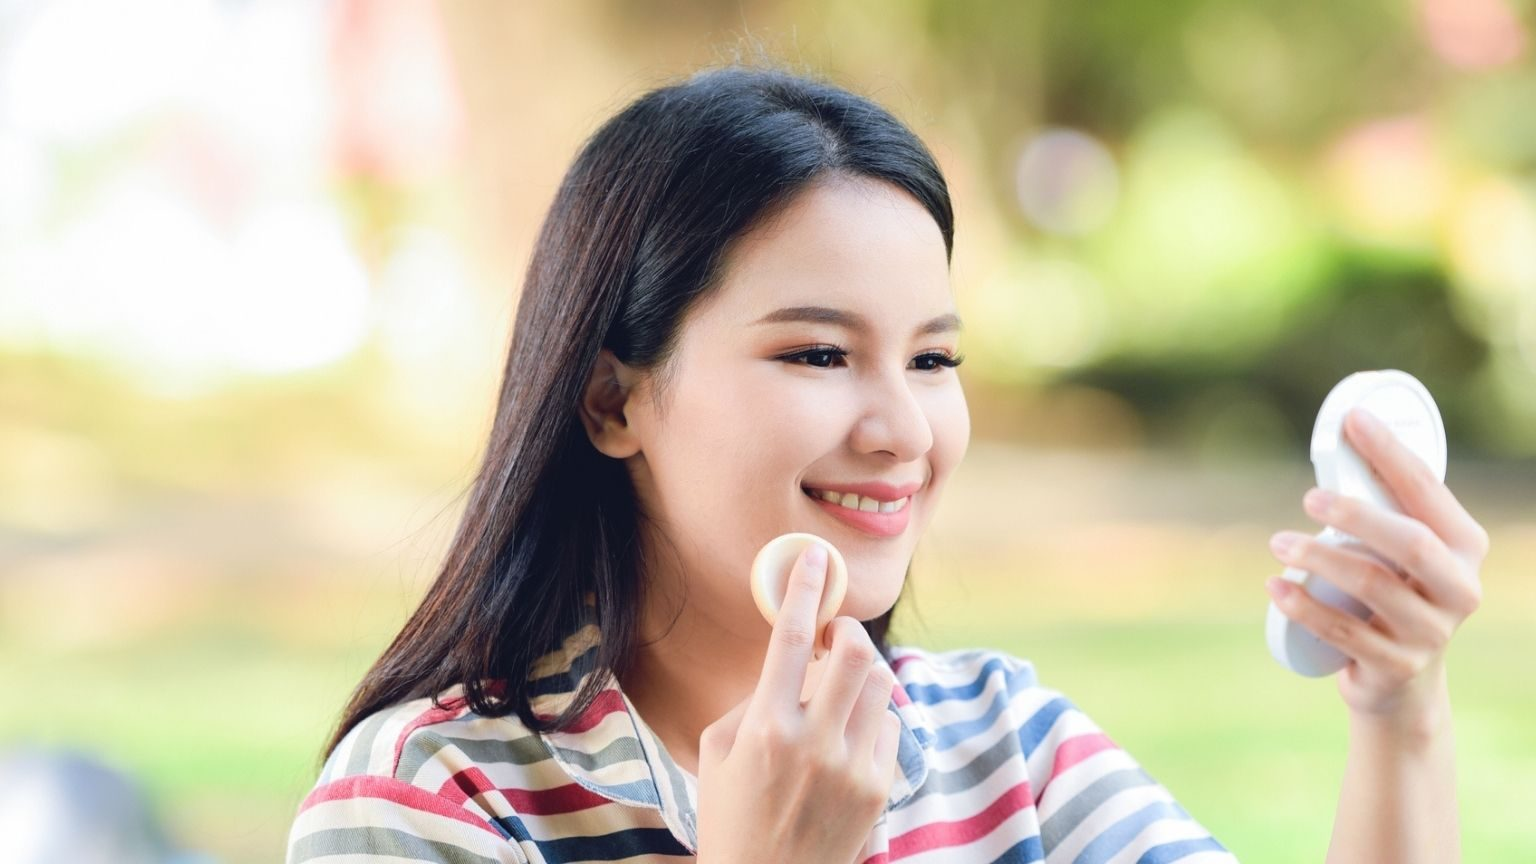 Smiling Woman Applying Make-Up In Park